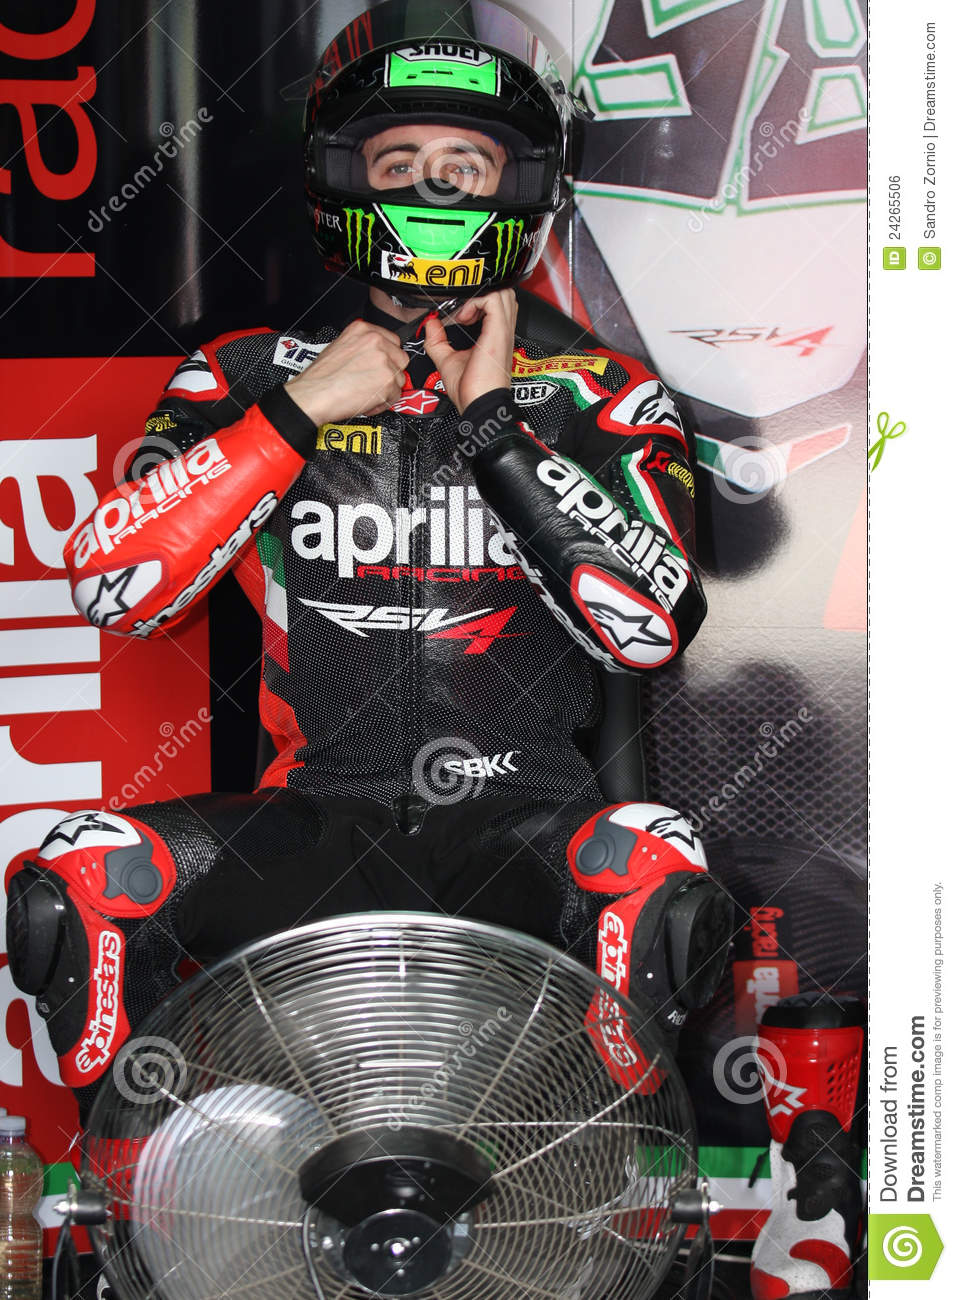 Eugene Laverty Aprilia RSV4 Aprilia Racing Team